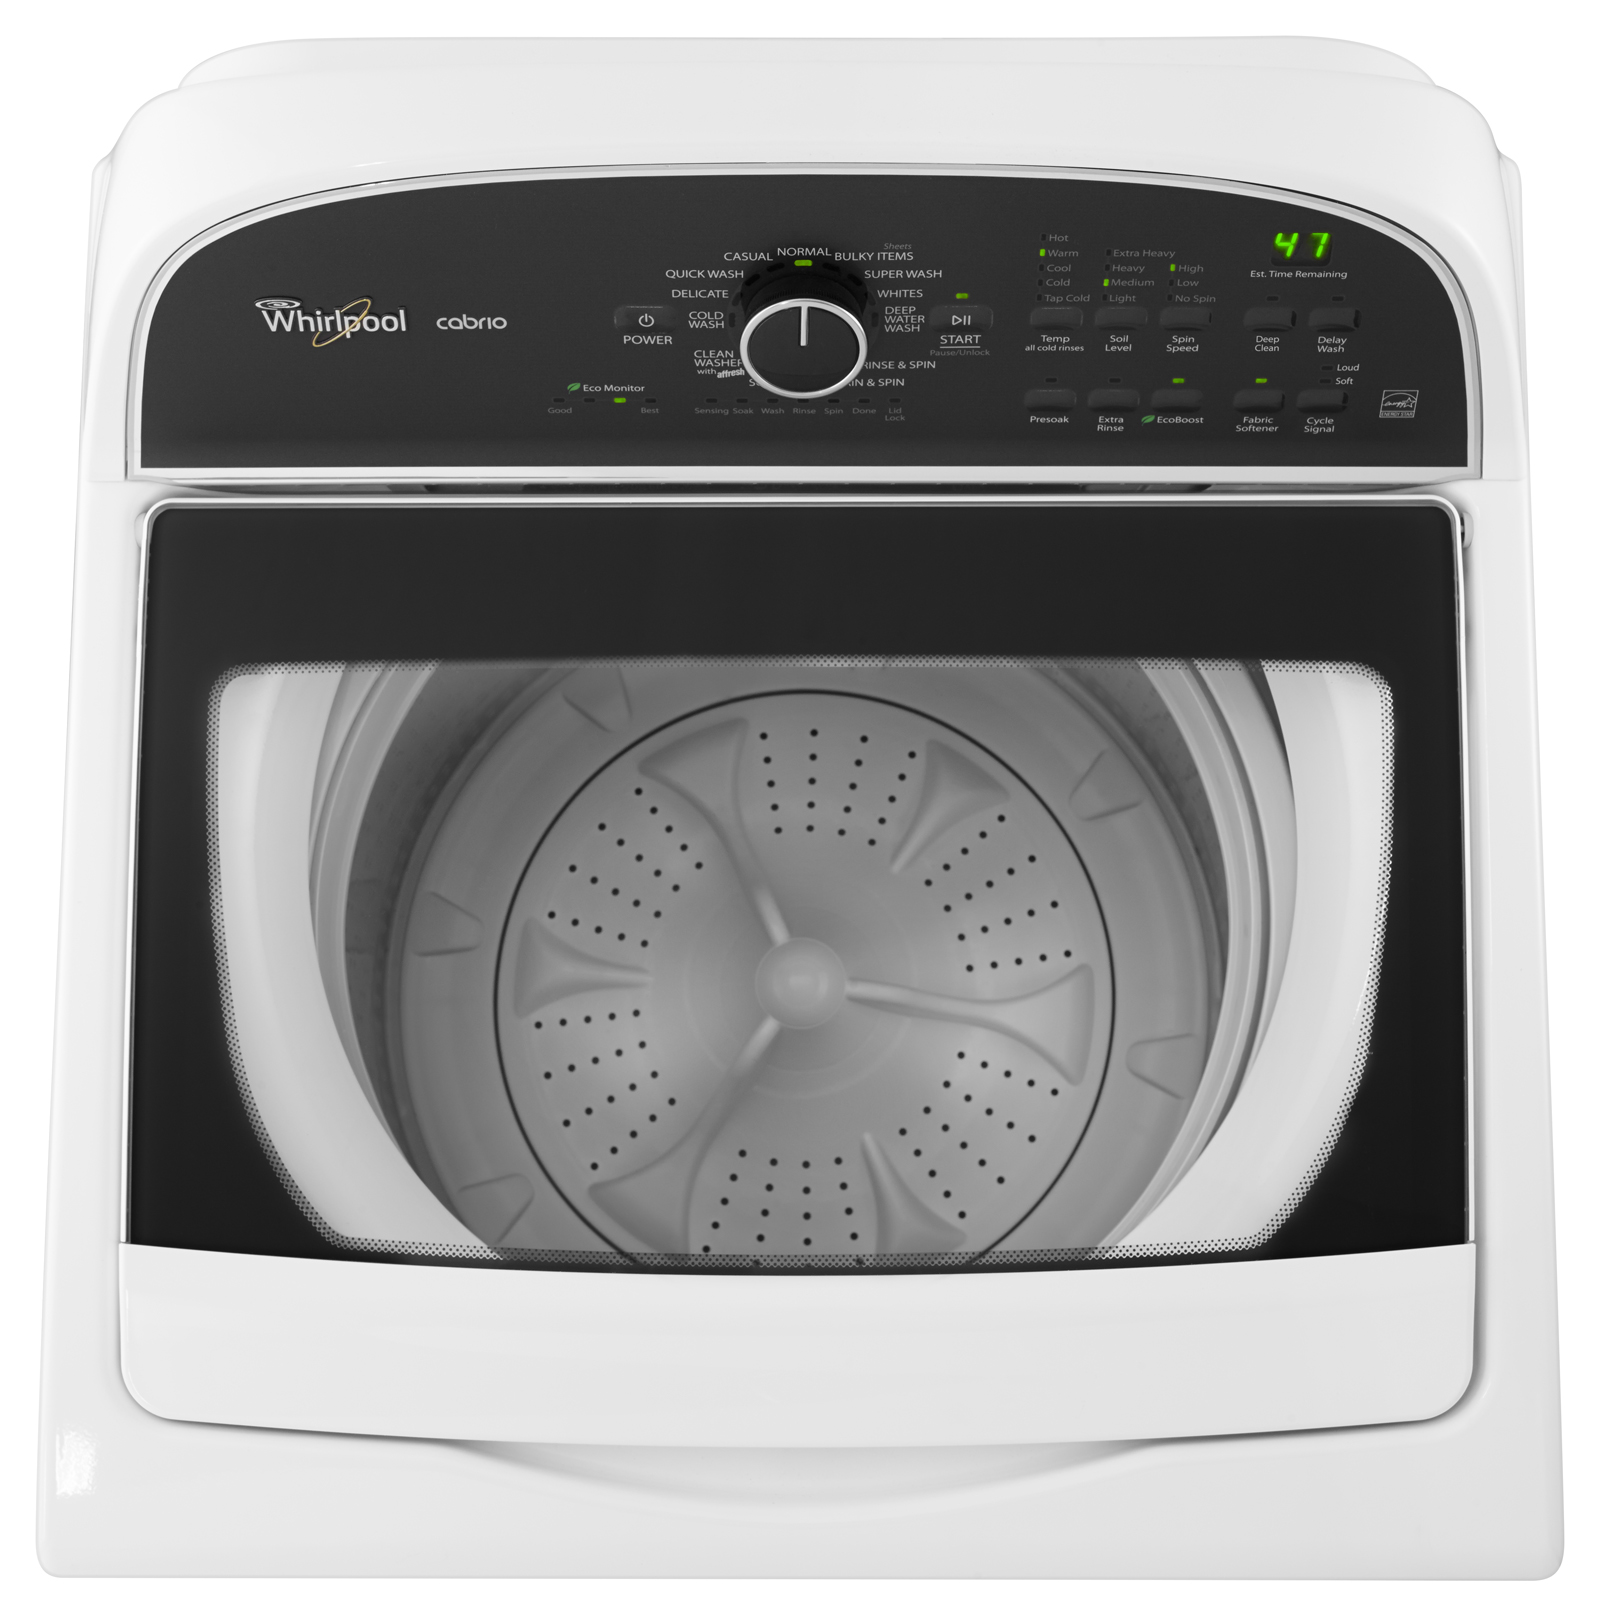 Whirlpool 3.8 cu. ft. HE Top-Load Washer w/ EcoBoost™ Option - White